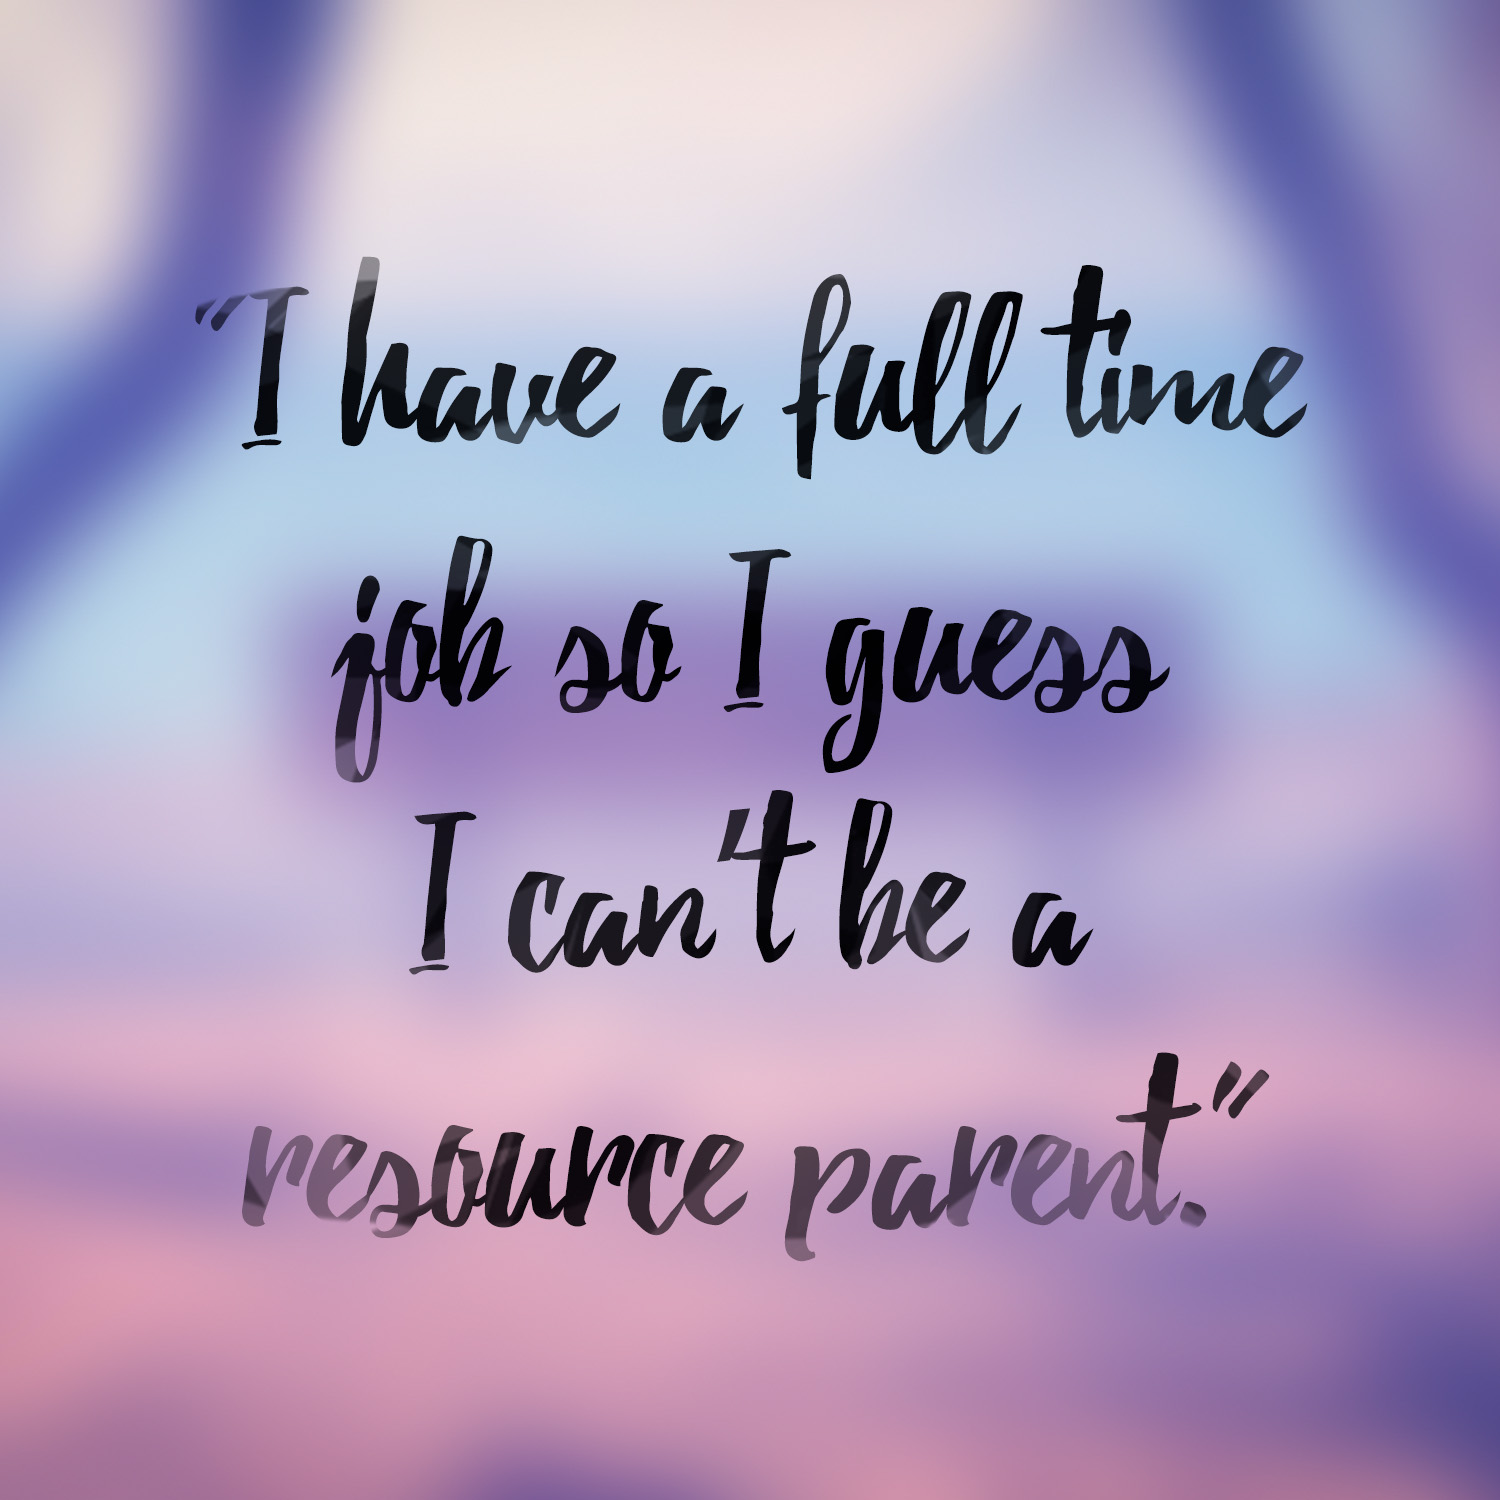 Myth - I have a full time job so I guess I can't be a resource parent.